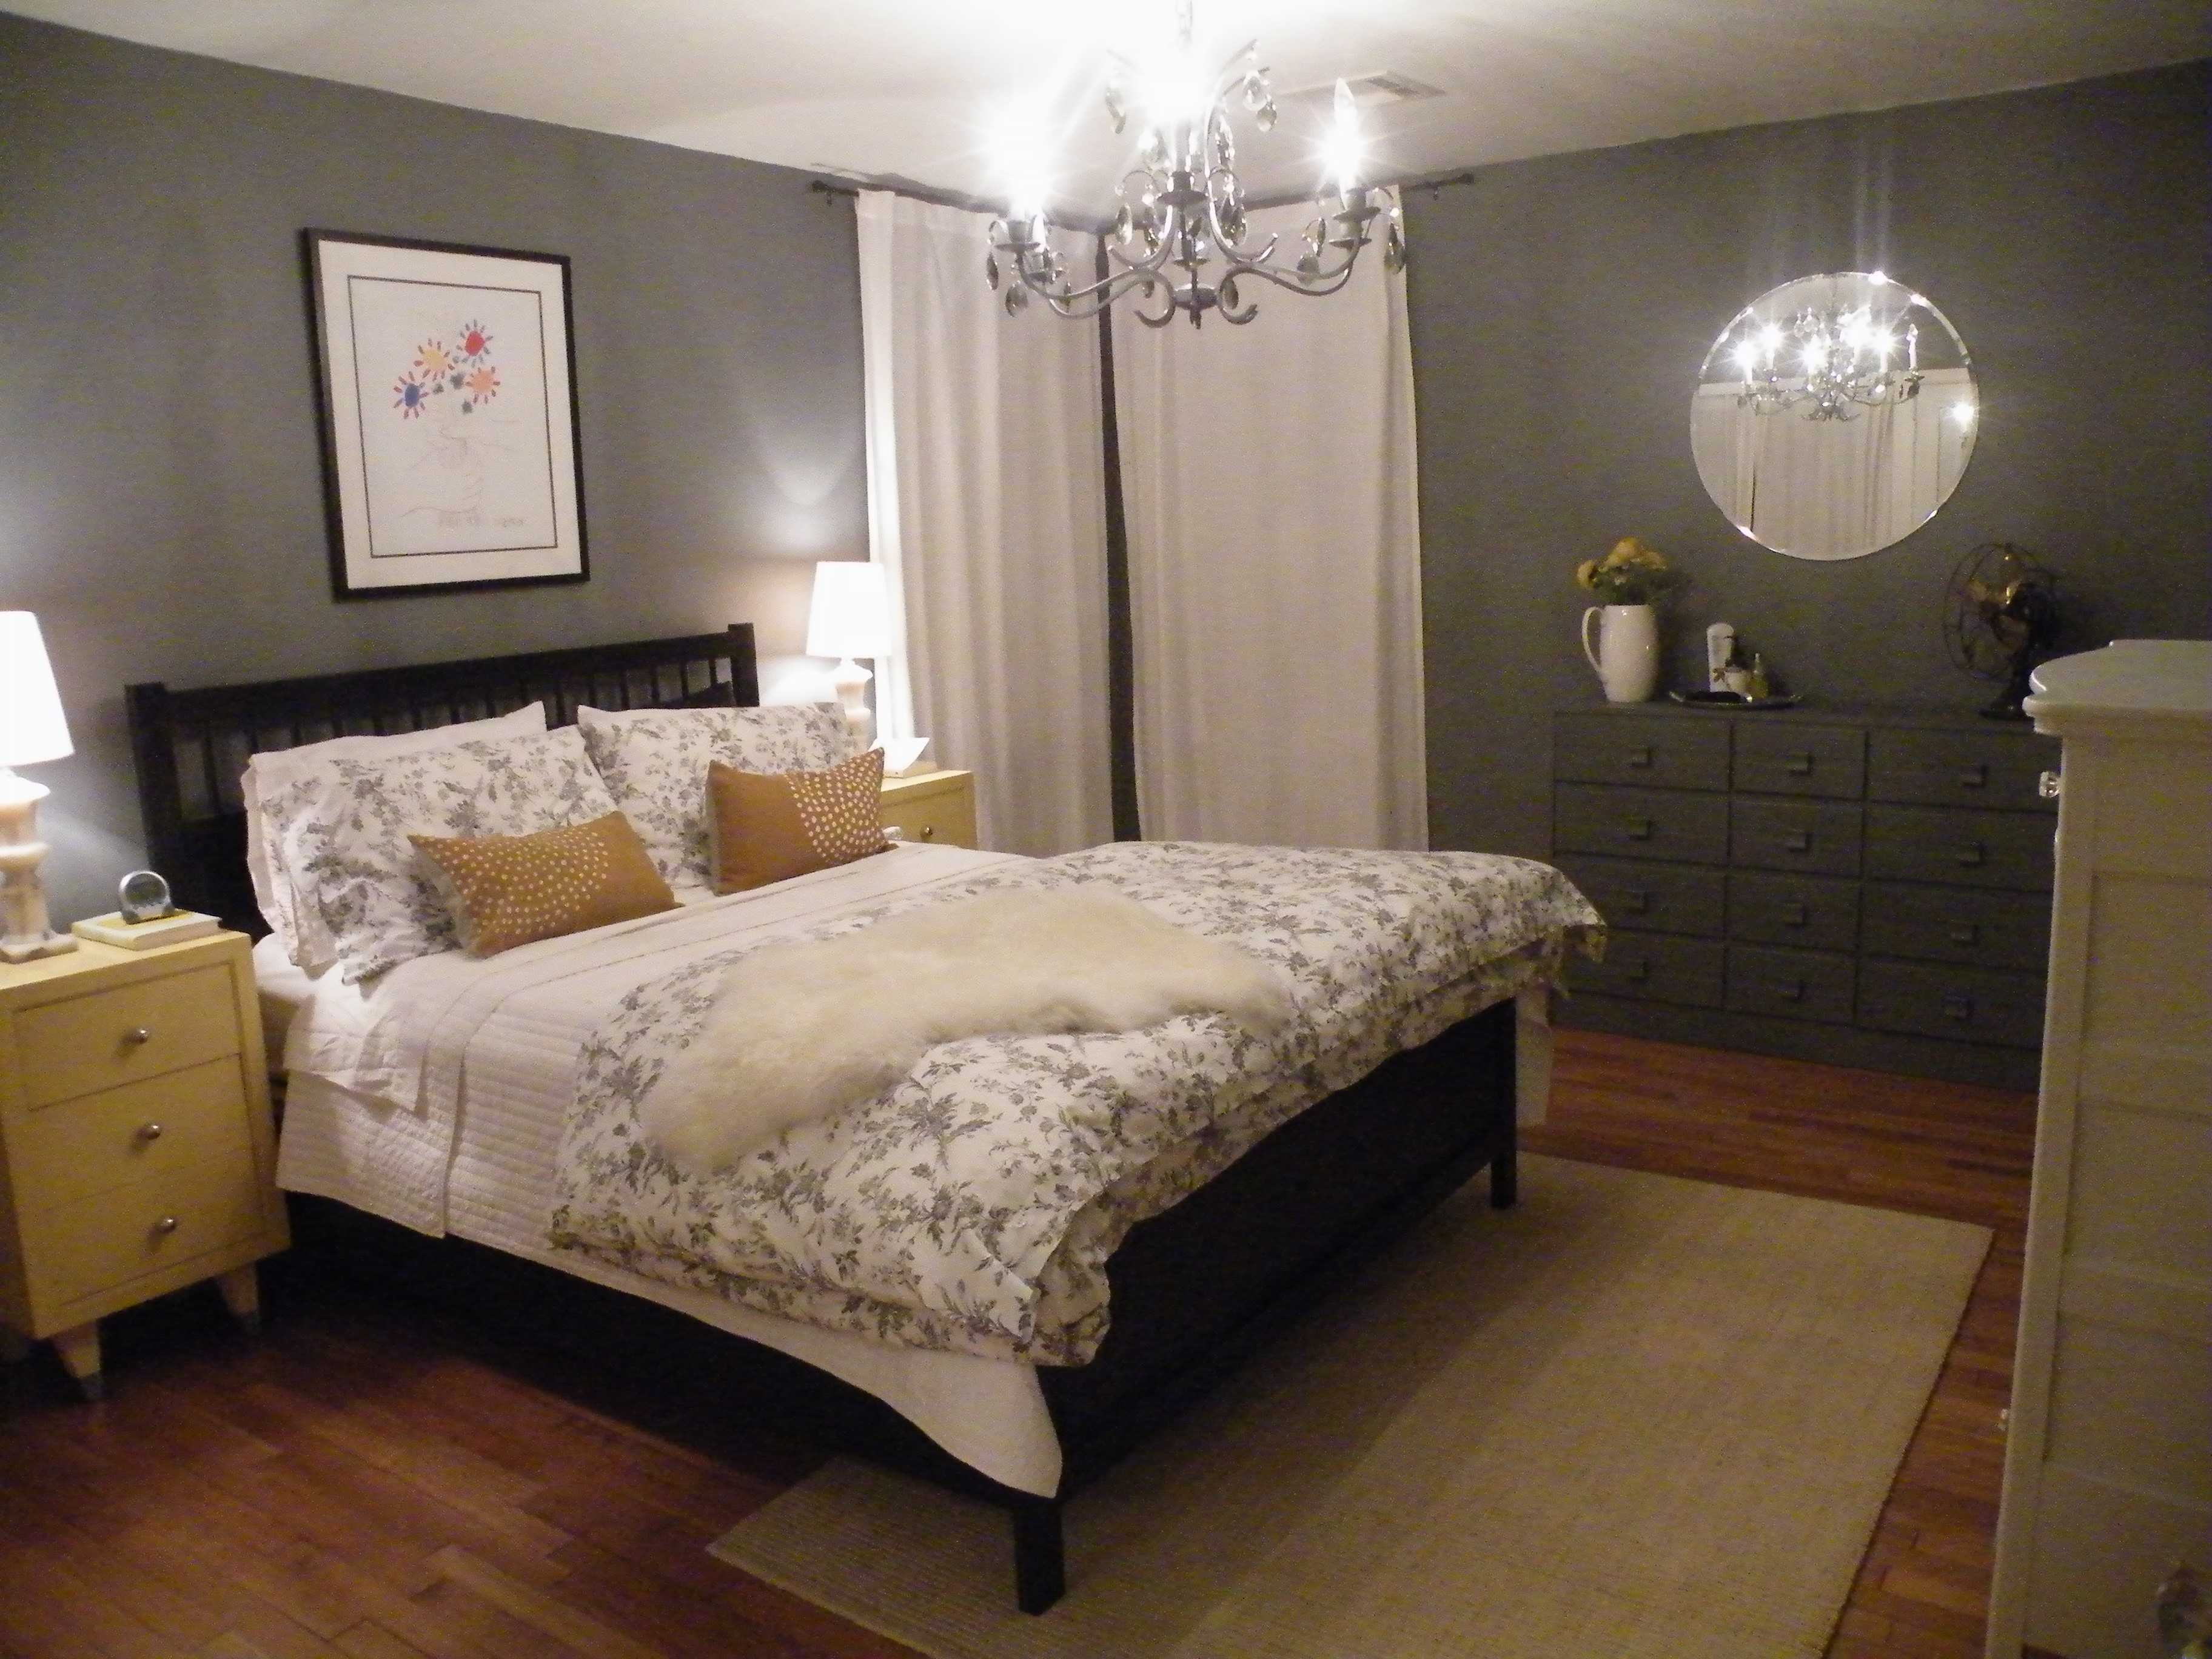 pillows-on-the-bed-at-west-gray-master-bedroom-chandelier